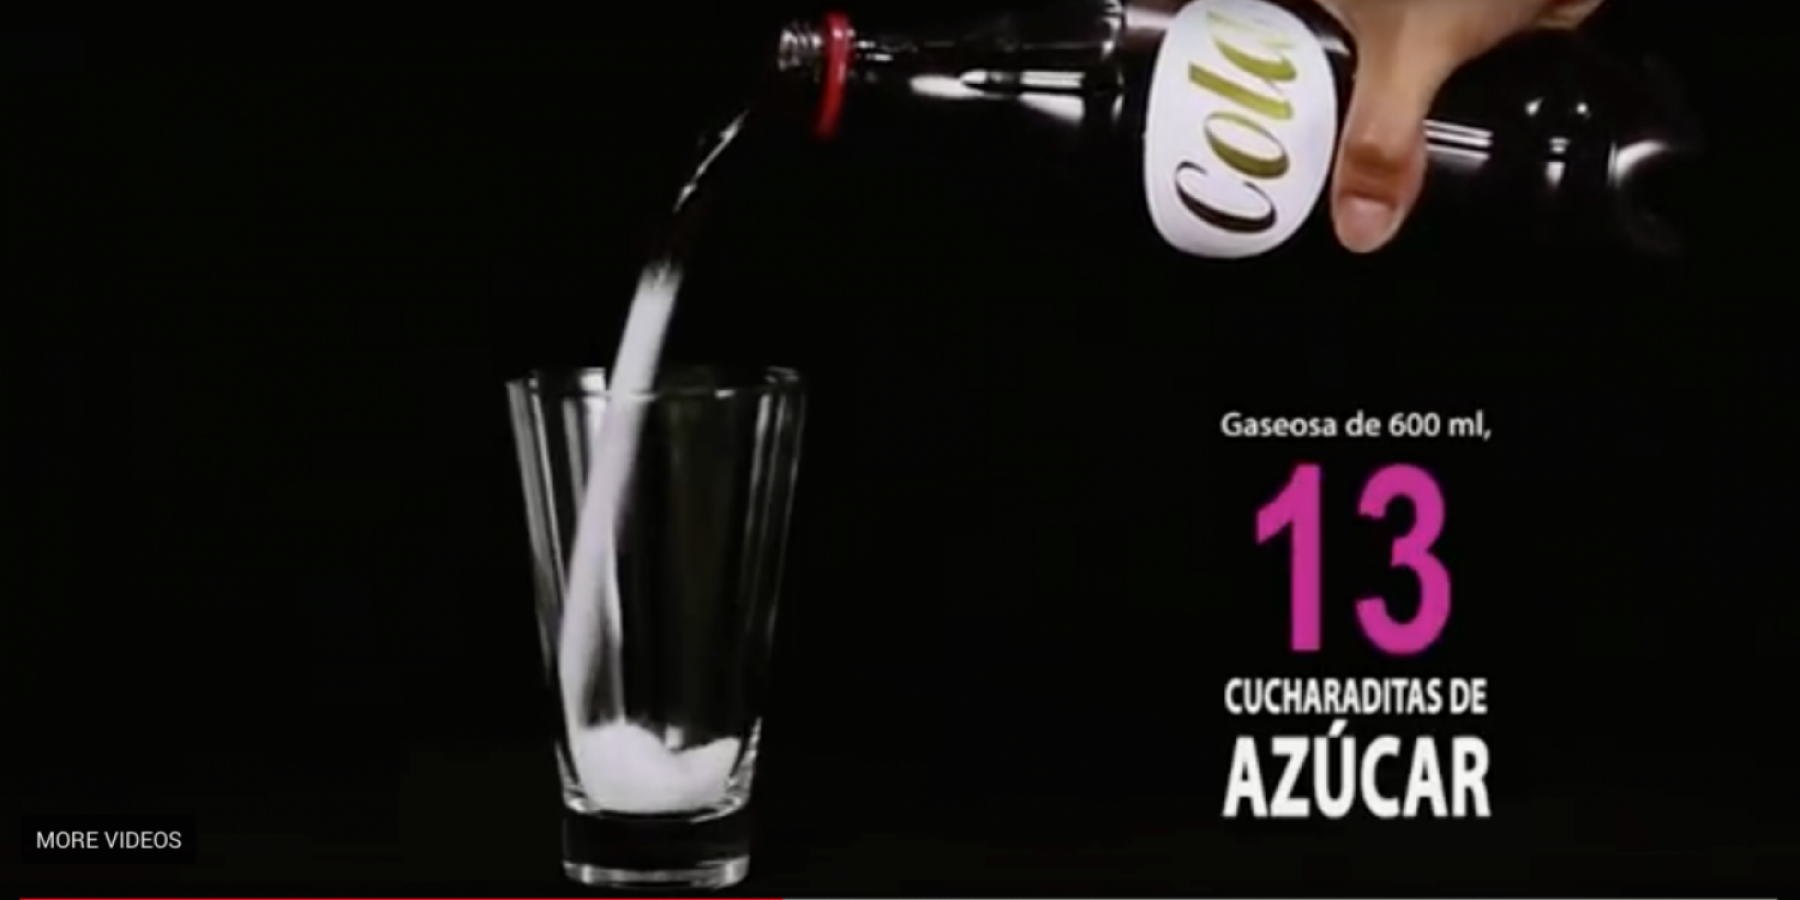 """Tómala en serio"" campaign highlights the amount of sugar consumed through drinking sugar-sweetened beverages."